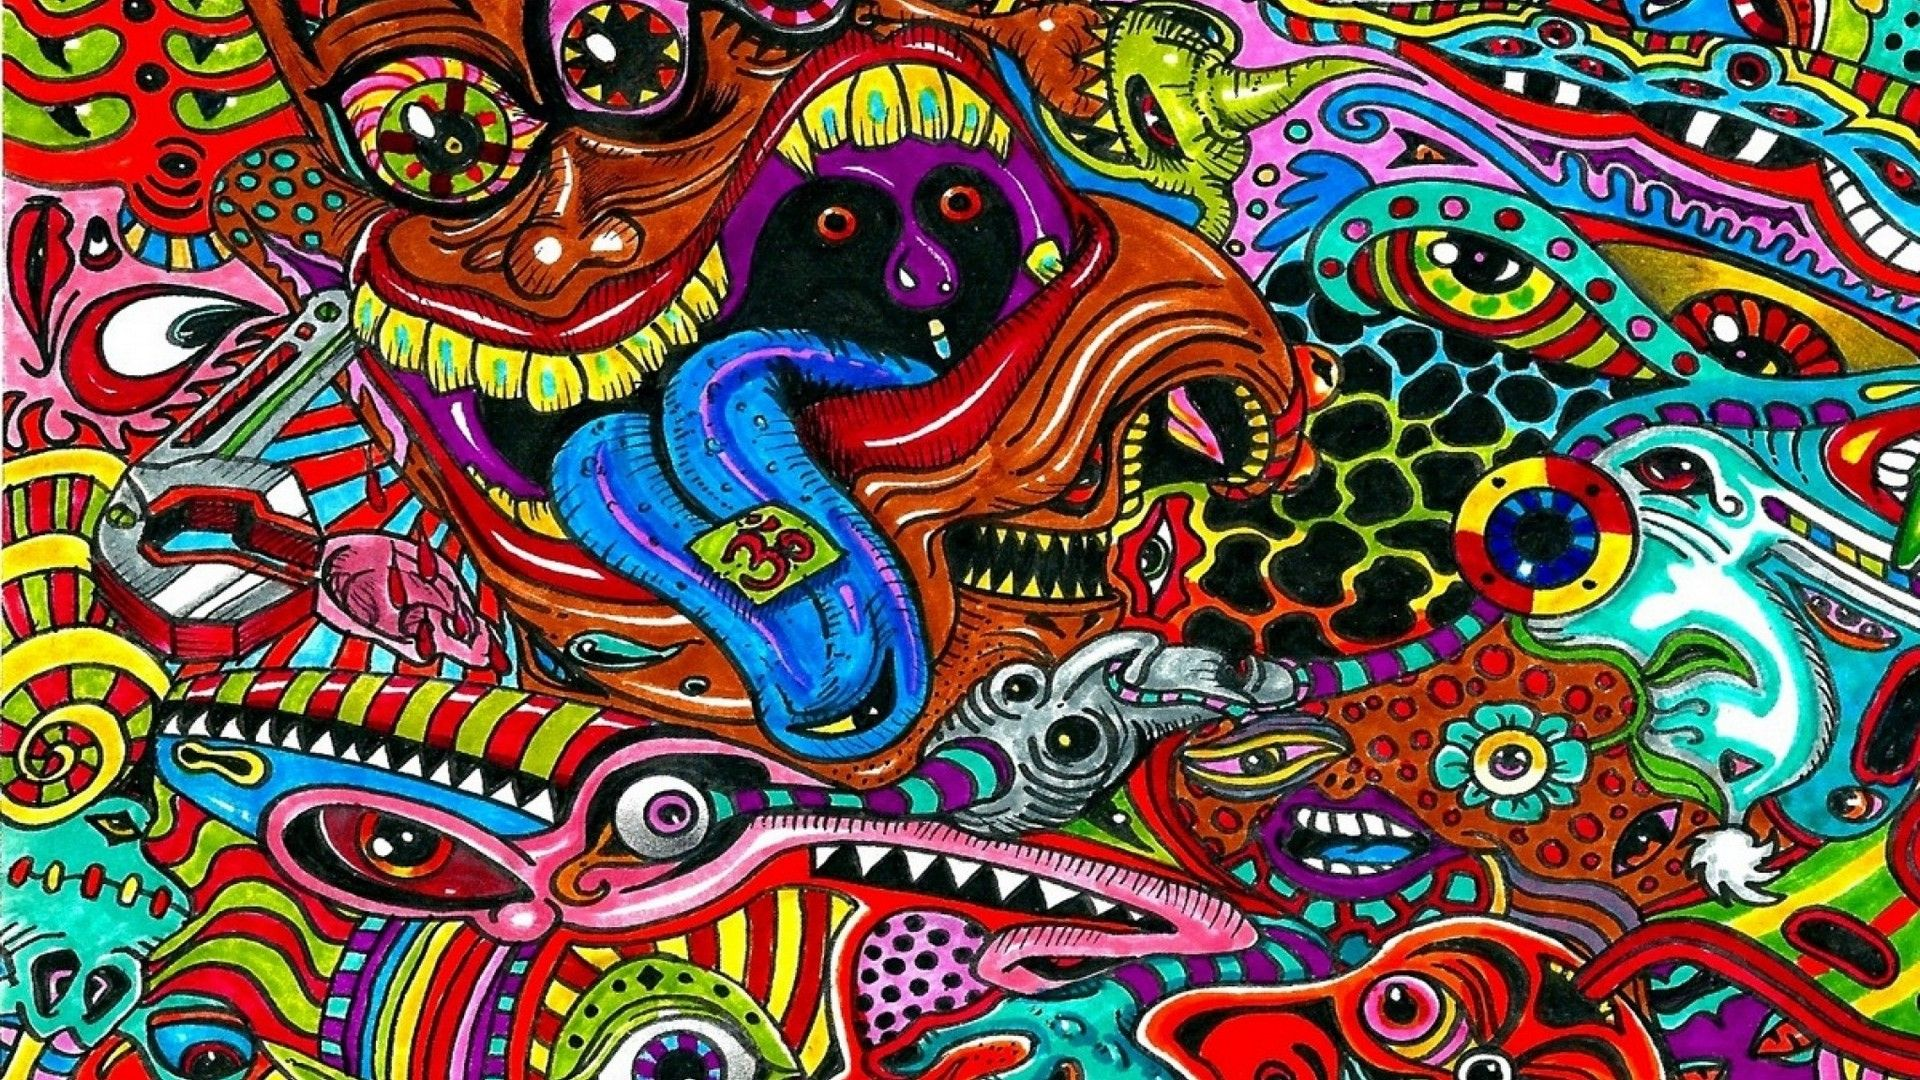 Psychedelic Art Background Wallpaper HD Trippy wallpaper